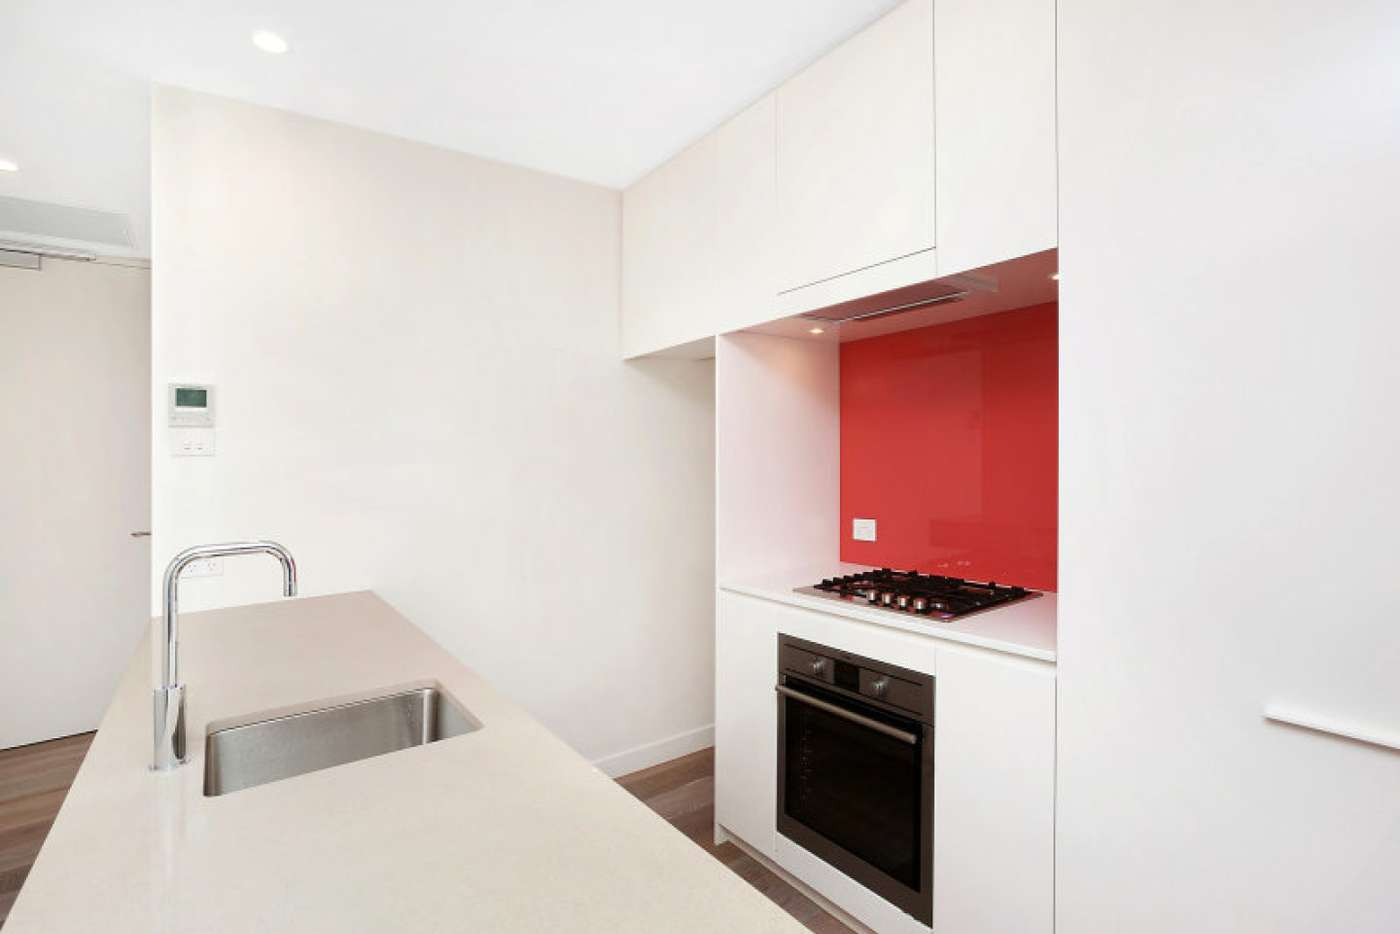 Main view of Homely apartment listing, 703/8 Northcote Street, St Leonards NSW 2065